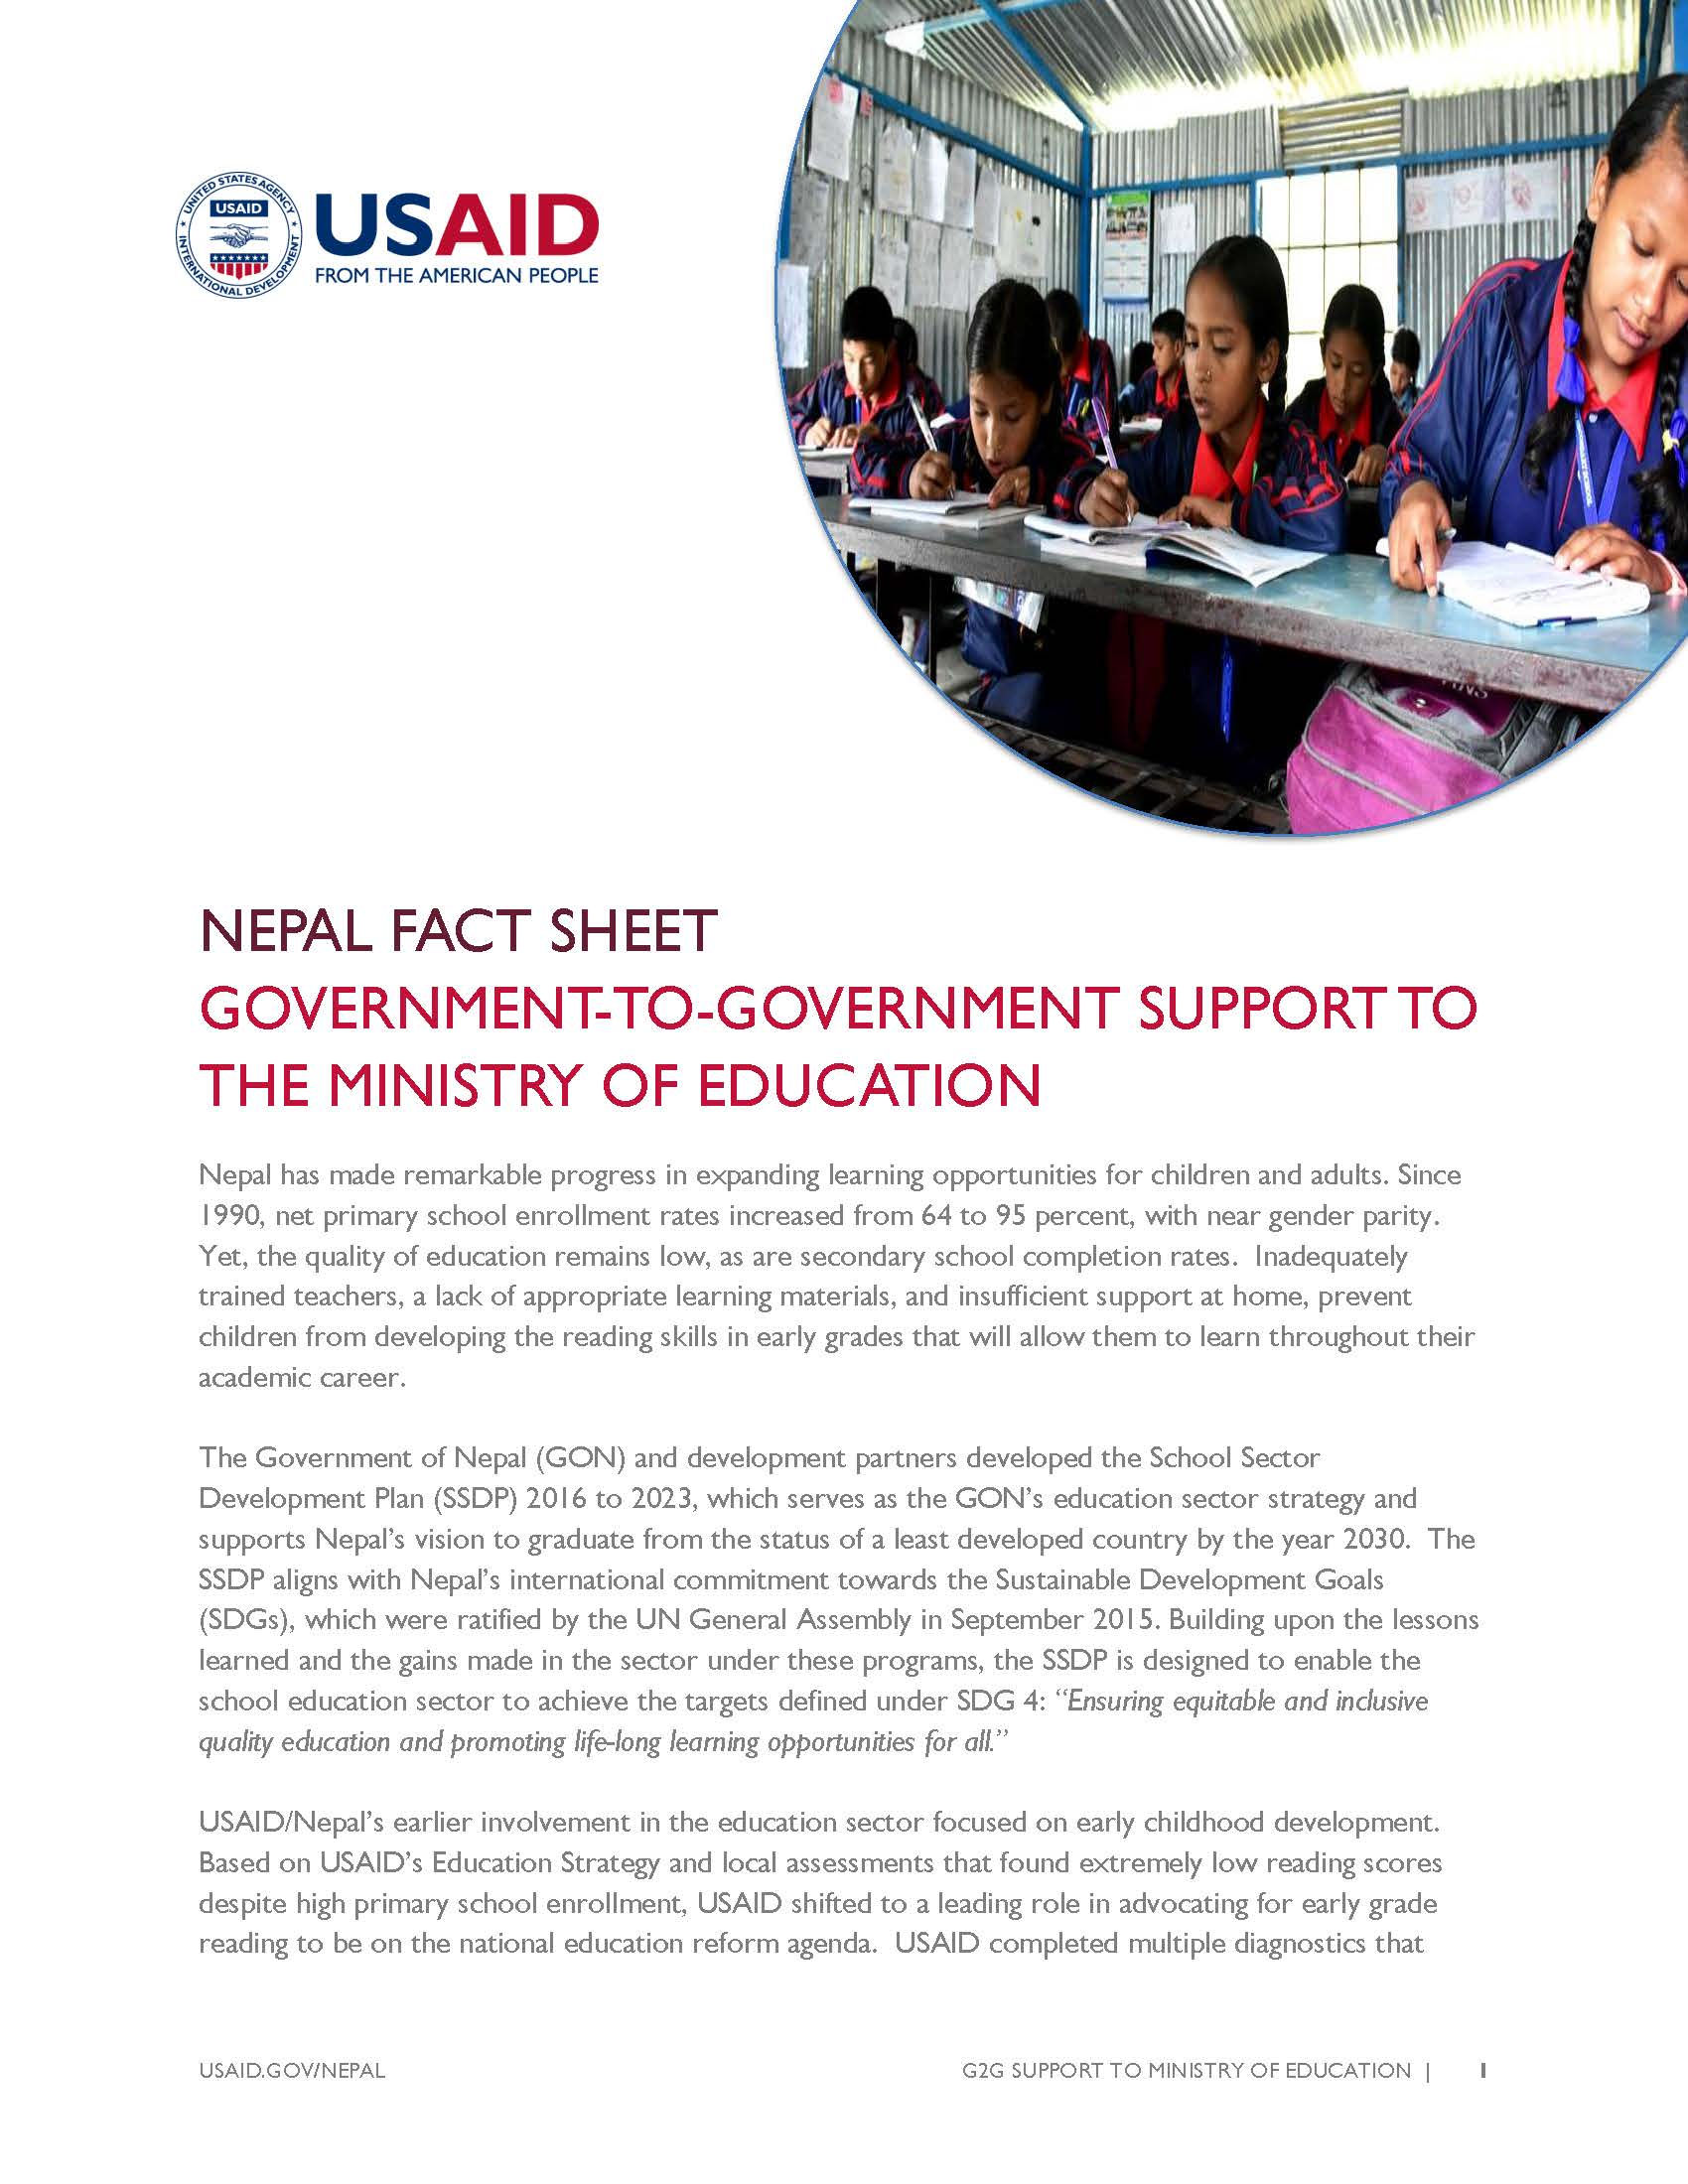 Fact Sheet: GOVERNMENT-TO-GOVERNMENT SUPPORT TO THE MINISTRY OF EDUCATION